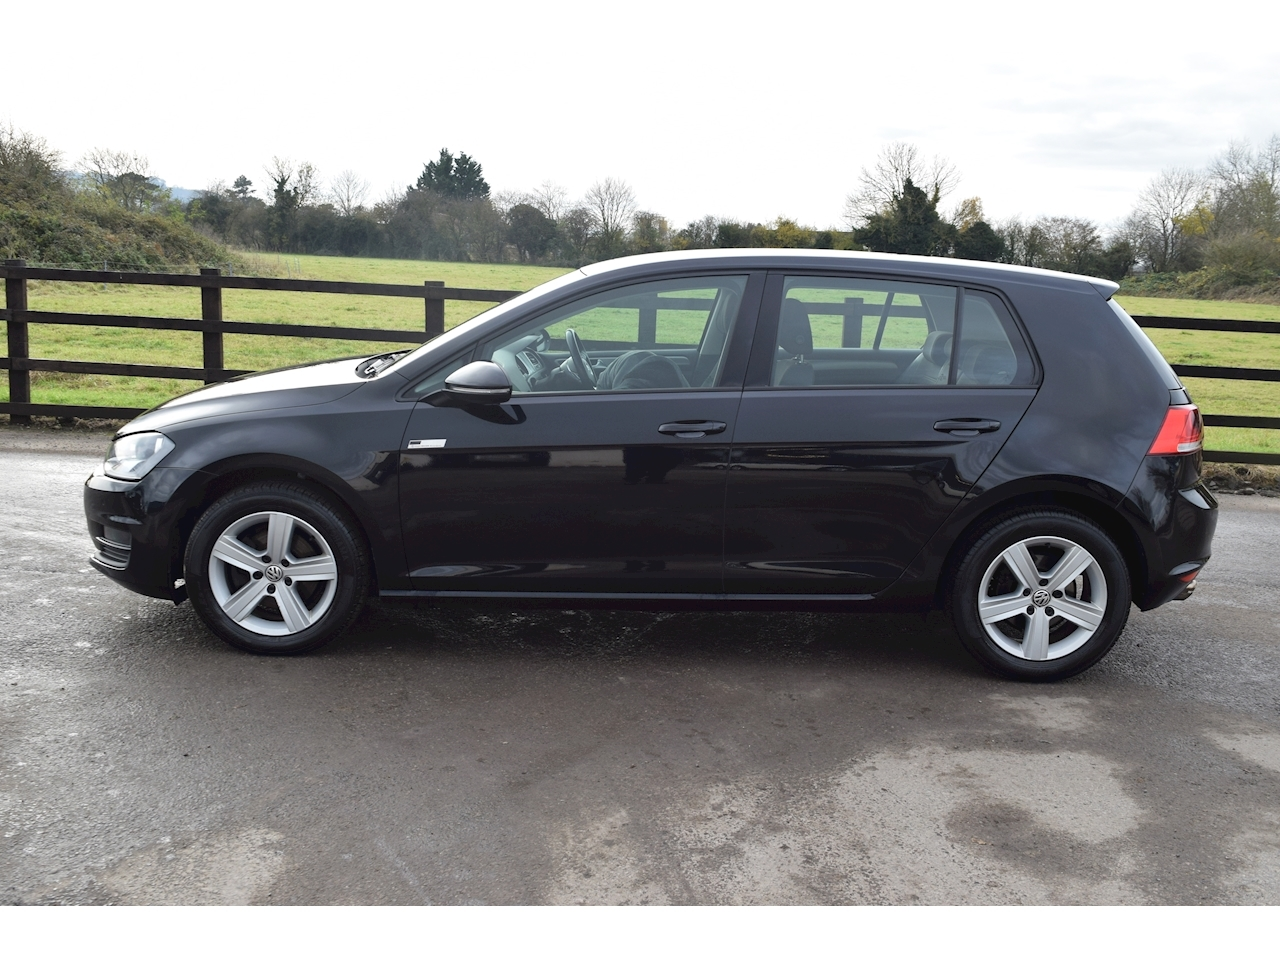 Volkswagen Golf Match Tdi Bluemotion Technology Hatchback 1.6 Manual Diesel